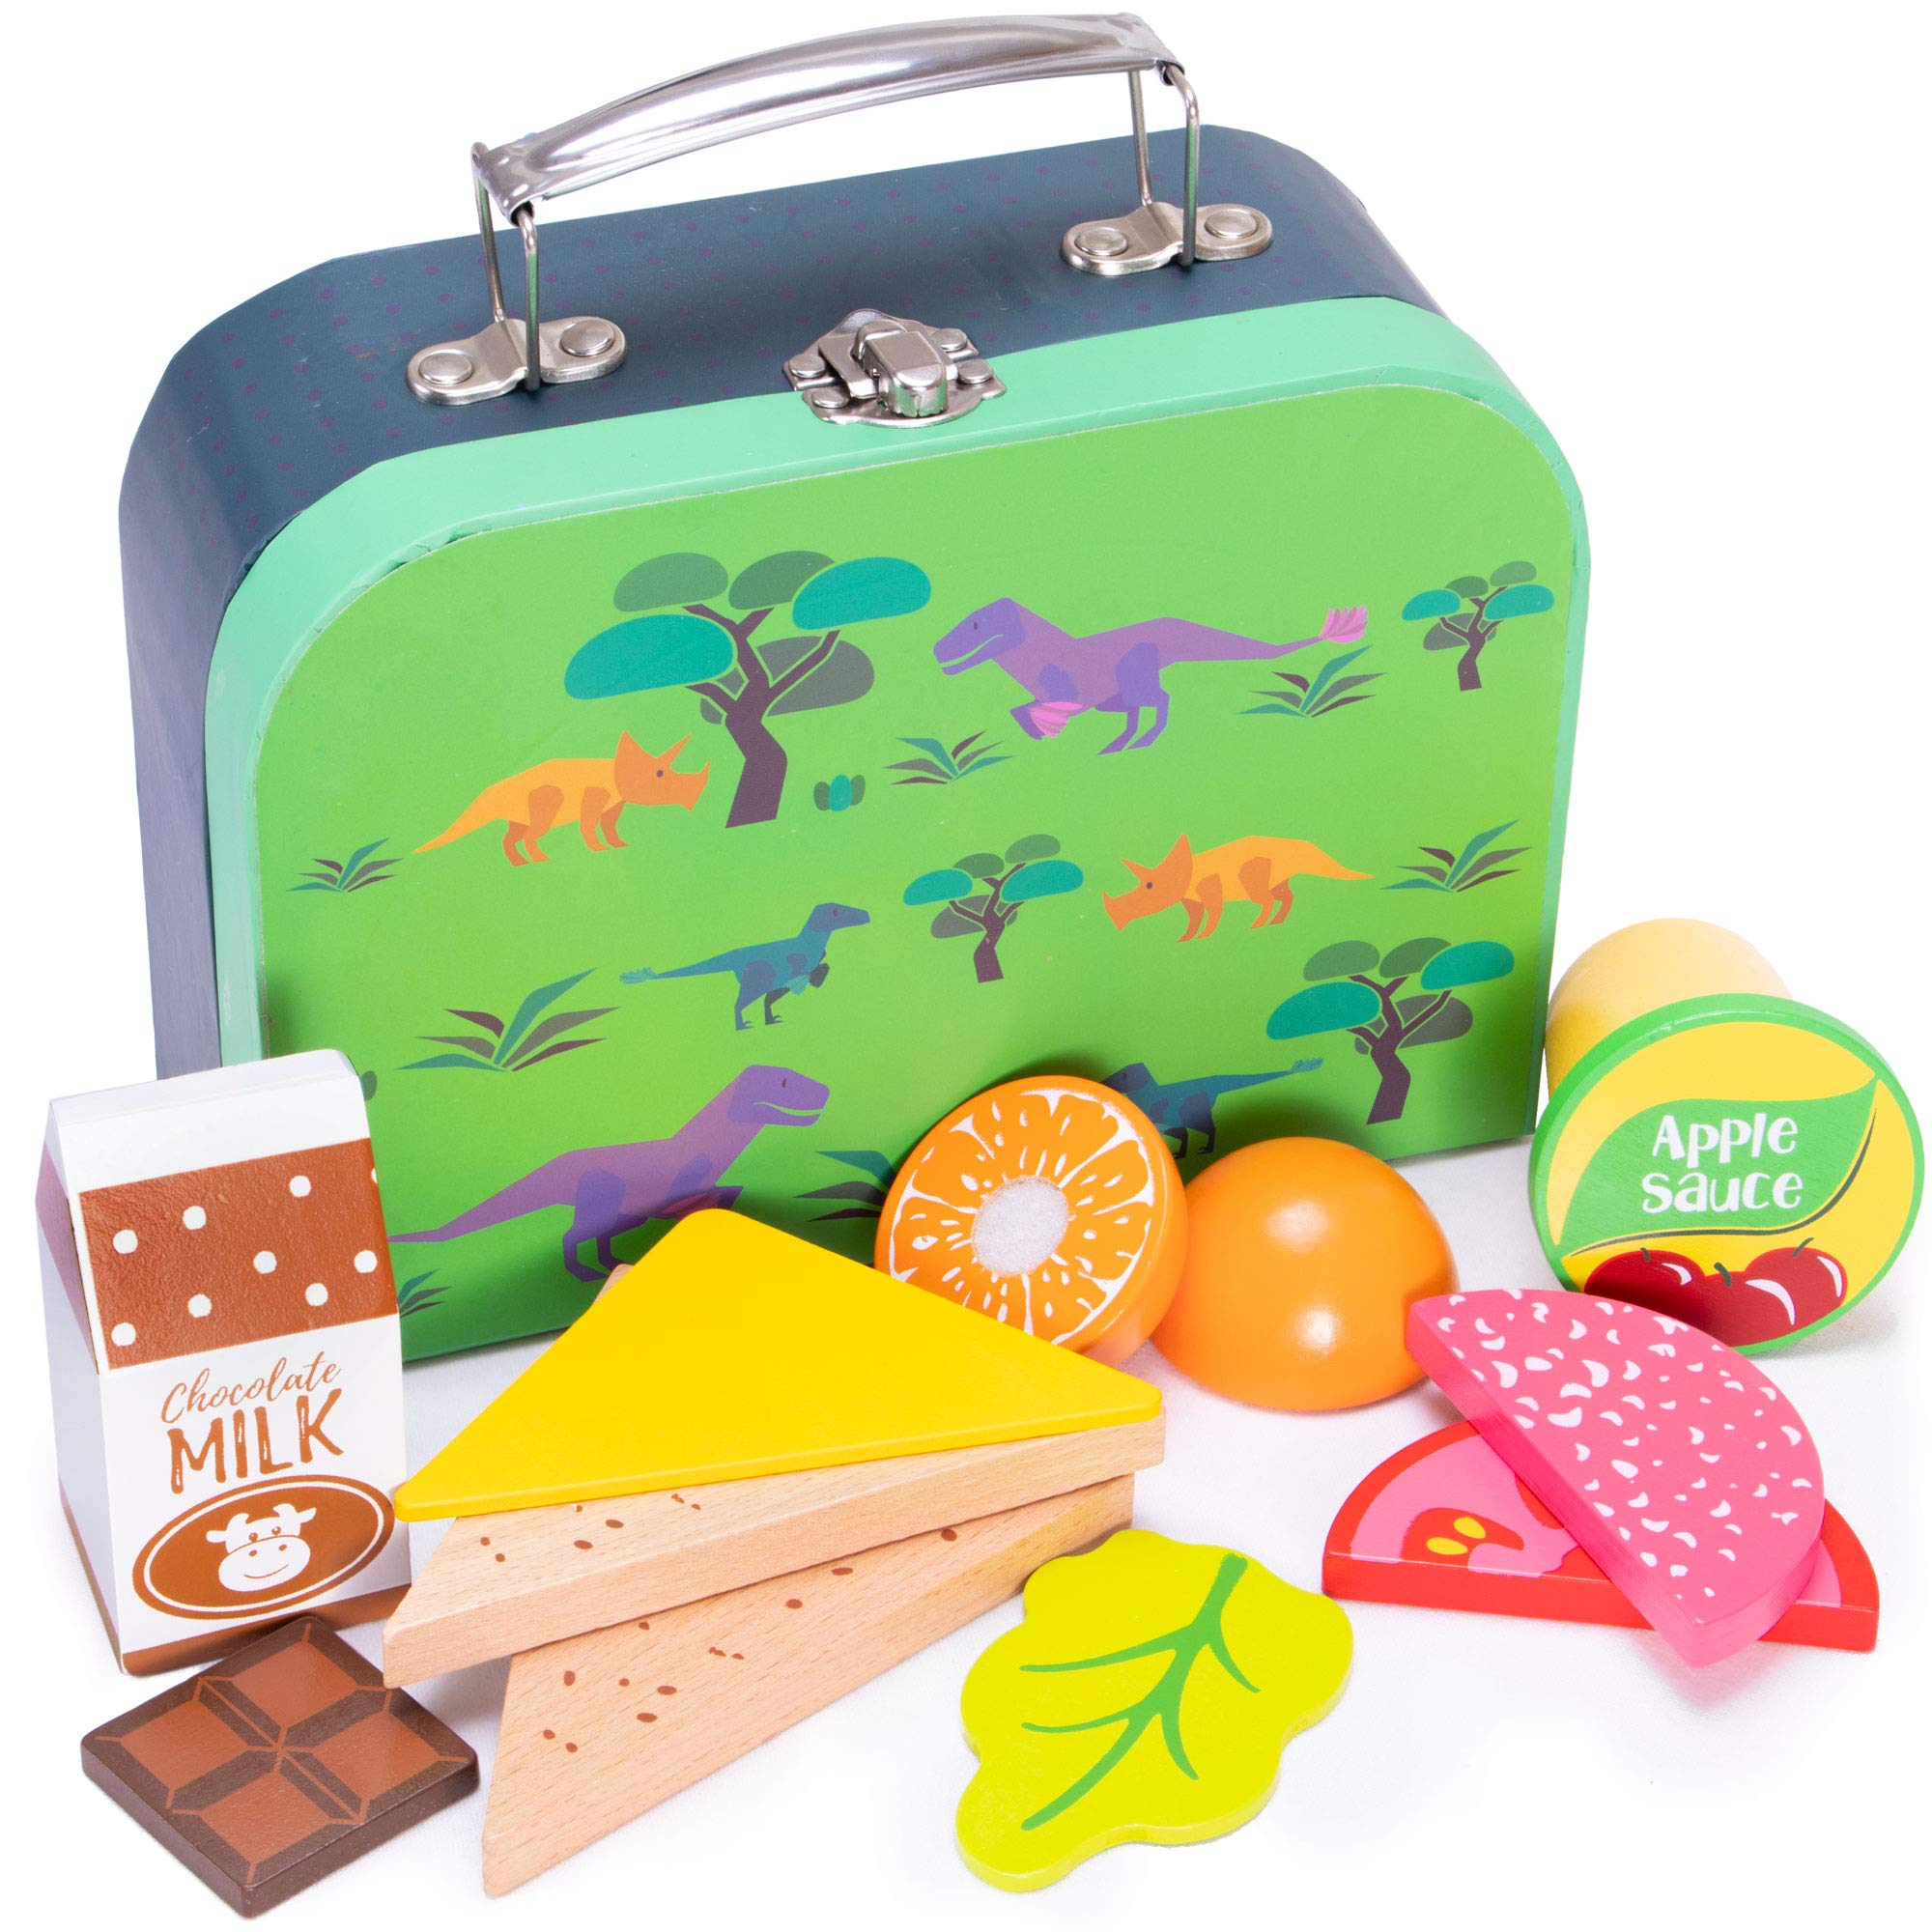 Prehistoric Dinosaur Lunch Box Playset   Wood Eats! Pretend Play Food Toy   Includes Jurassic T-Rex Children's Accessory and Complete, Healthy, Wooden Meal For Travel and Kitchen Fun   12 Pieces